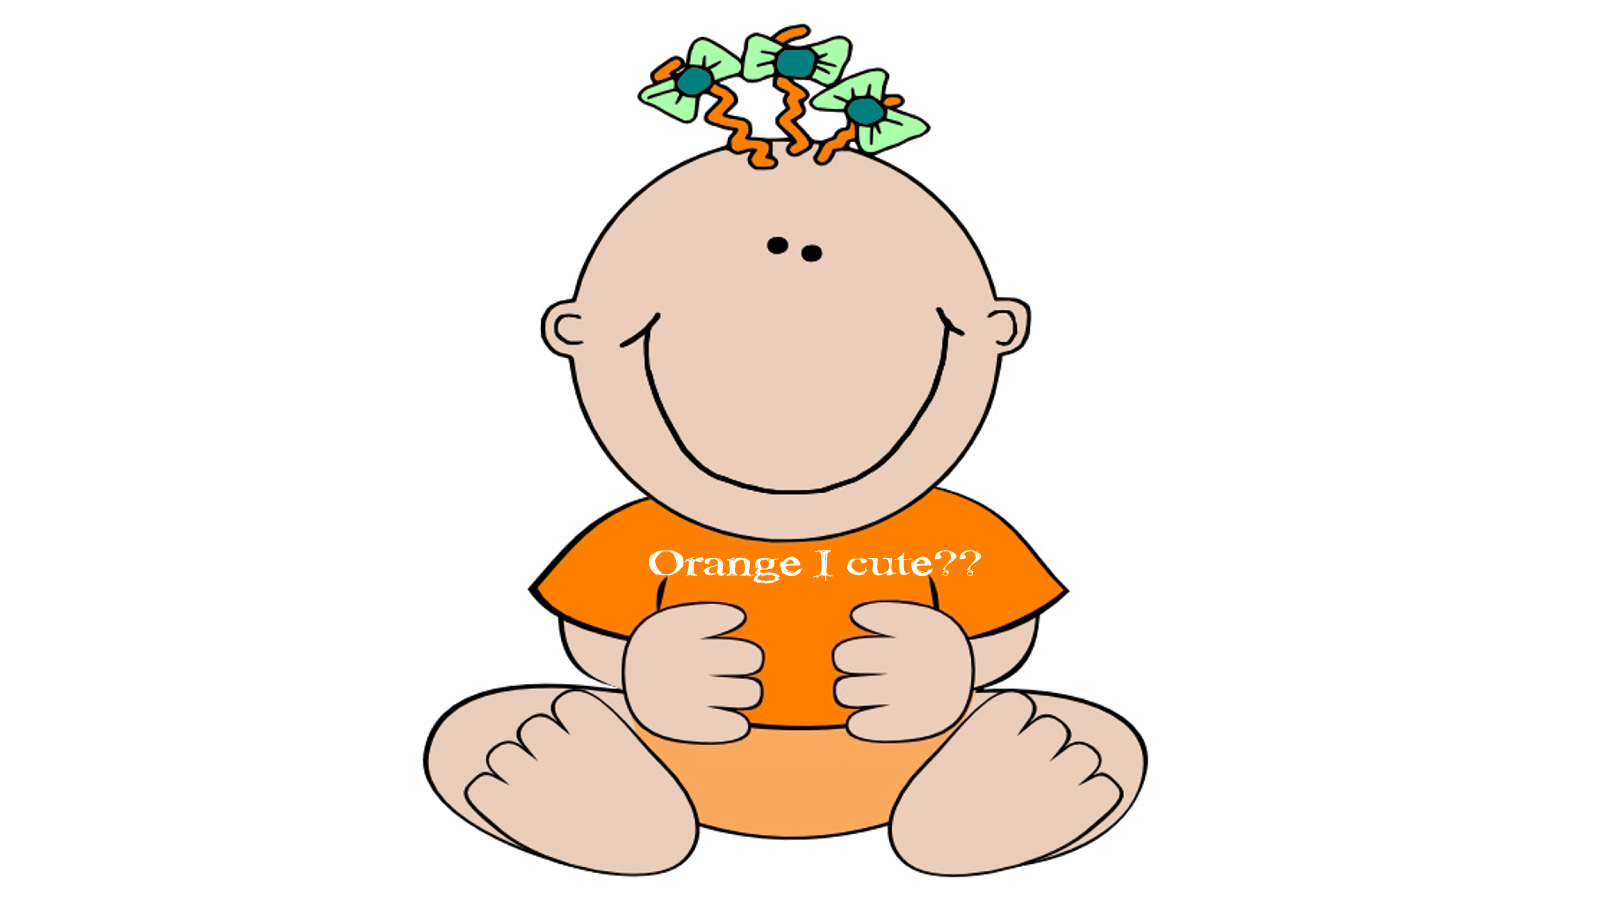 Baby orange free images. E clipart cute